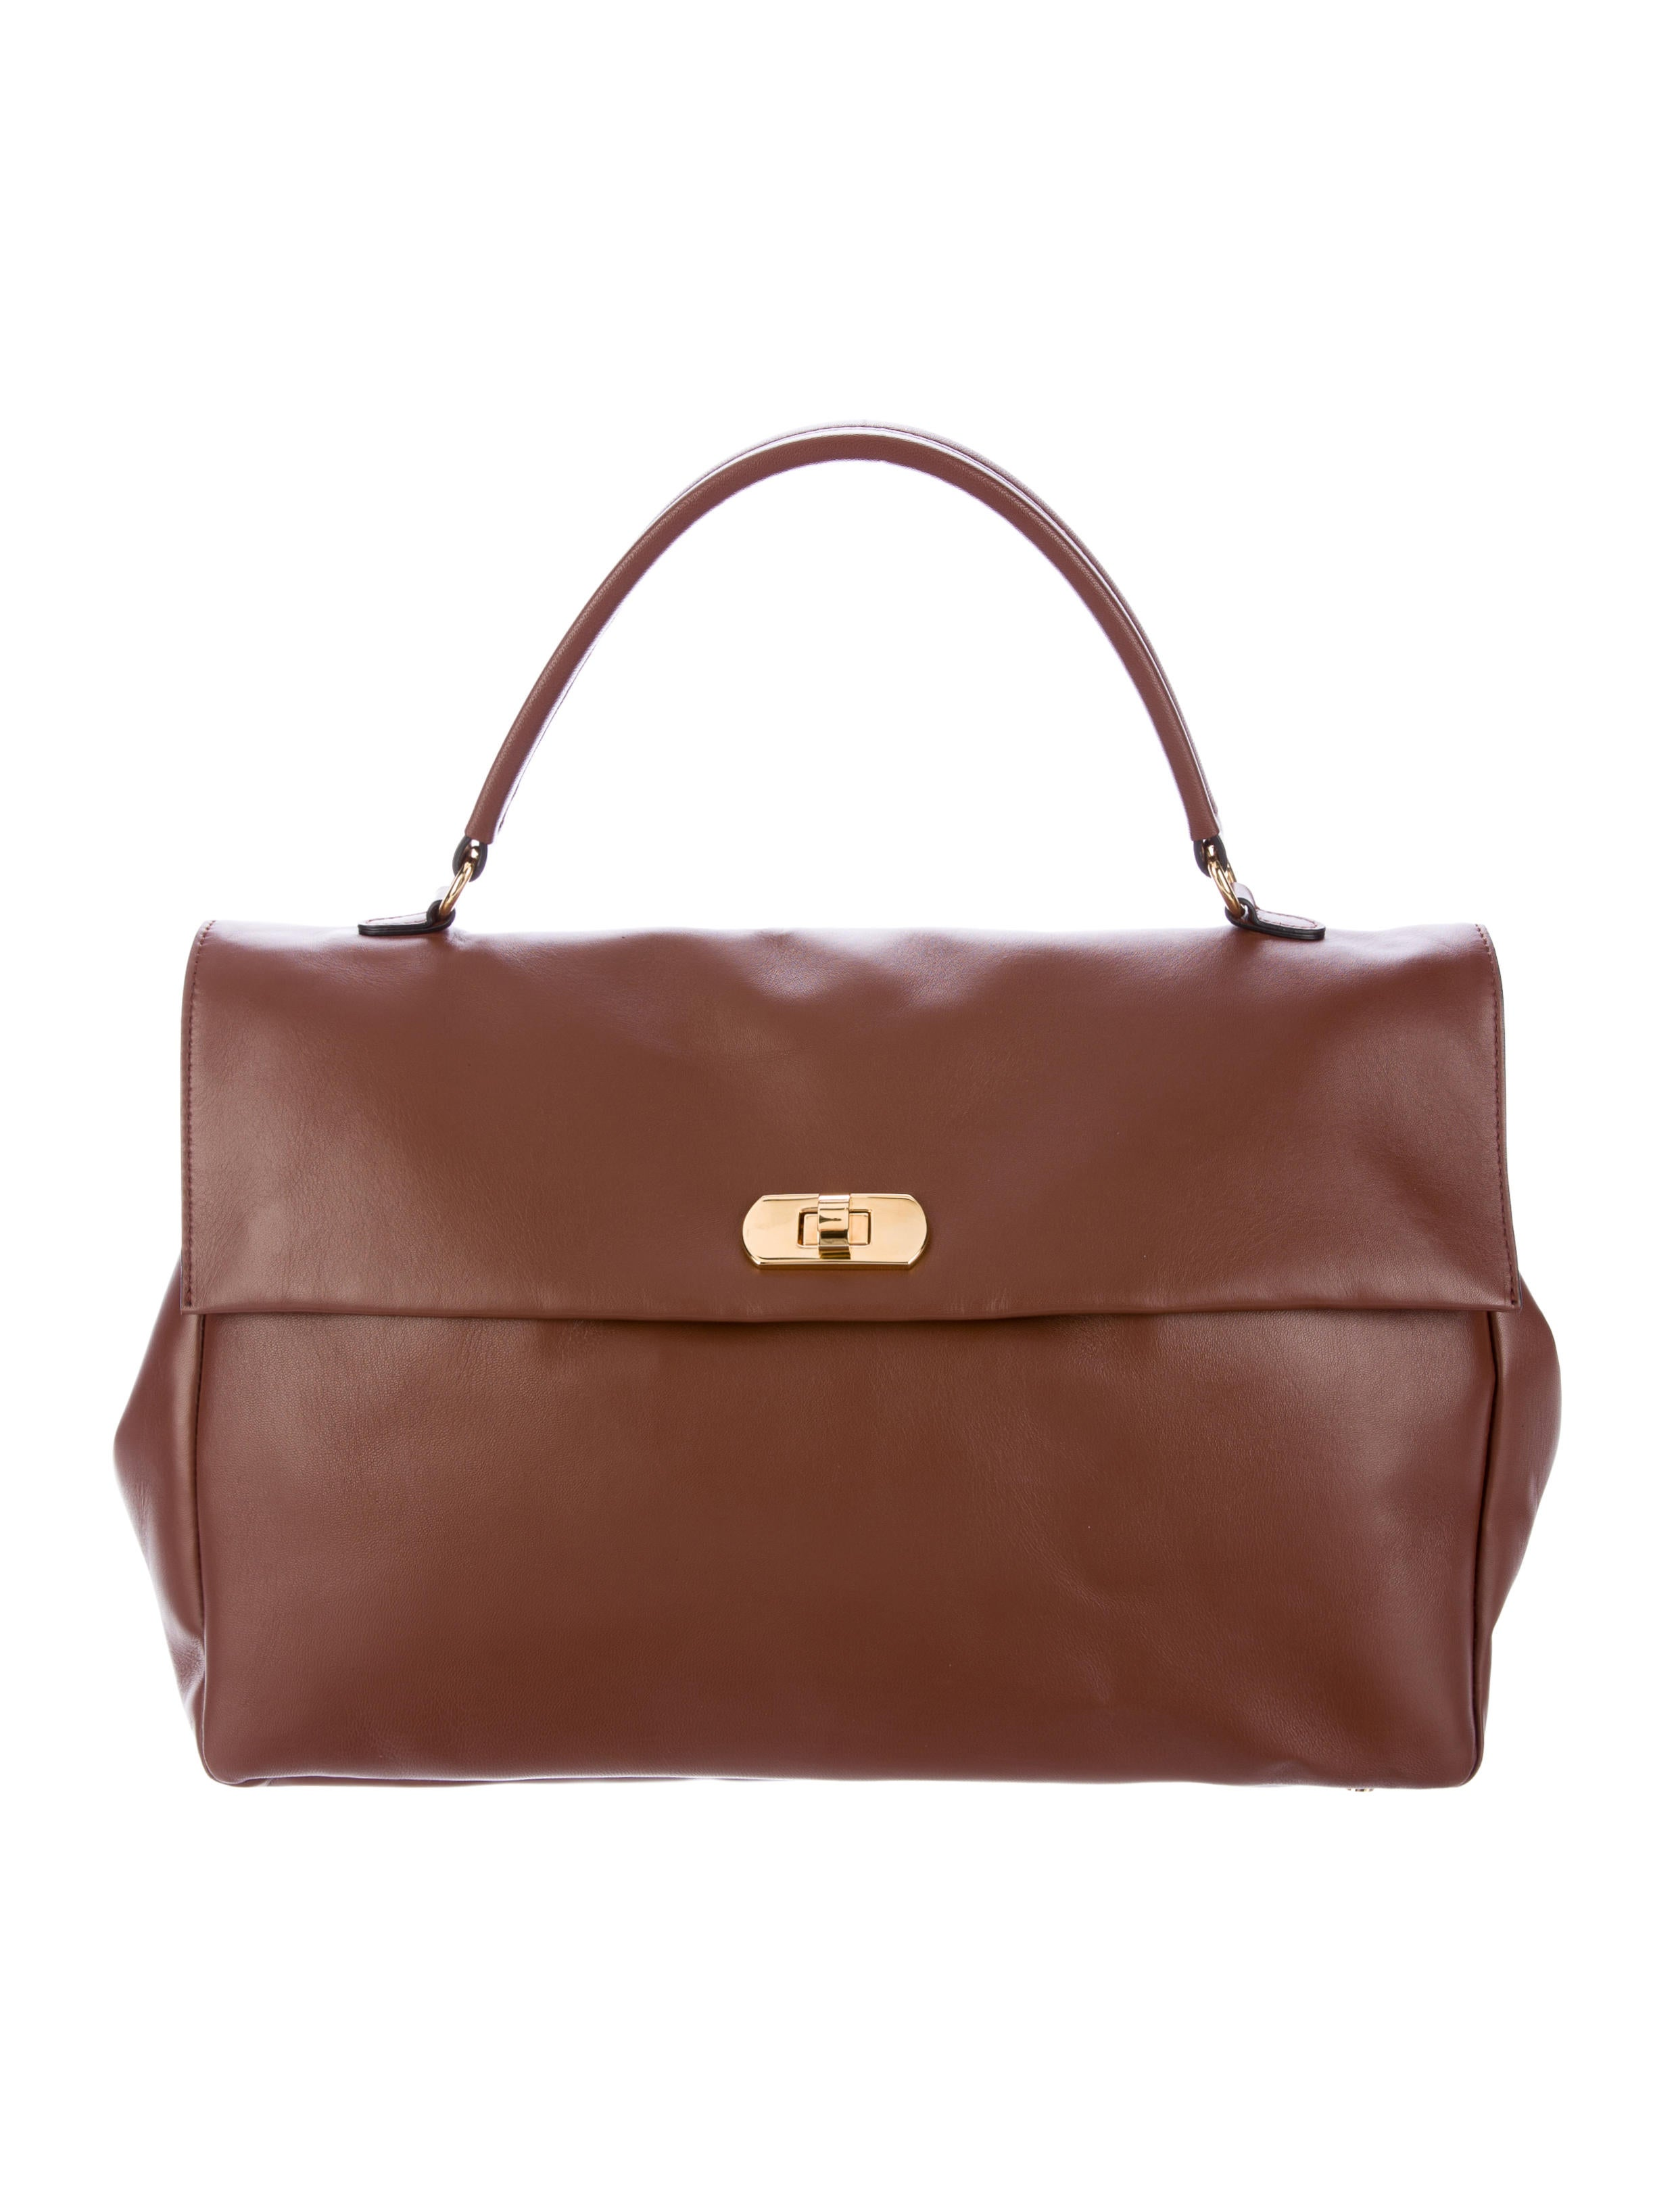 Buy second-hand MARNI handbags for Women on Vestiaire Collective. Buy, sell, empty your wardrobe on our website.